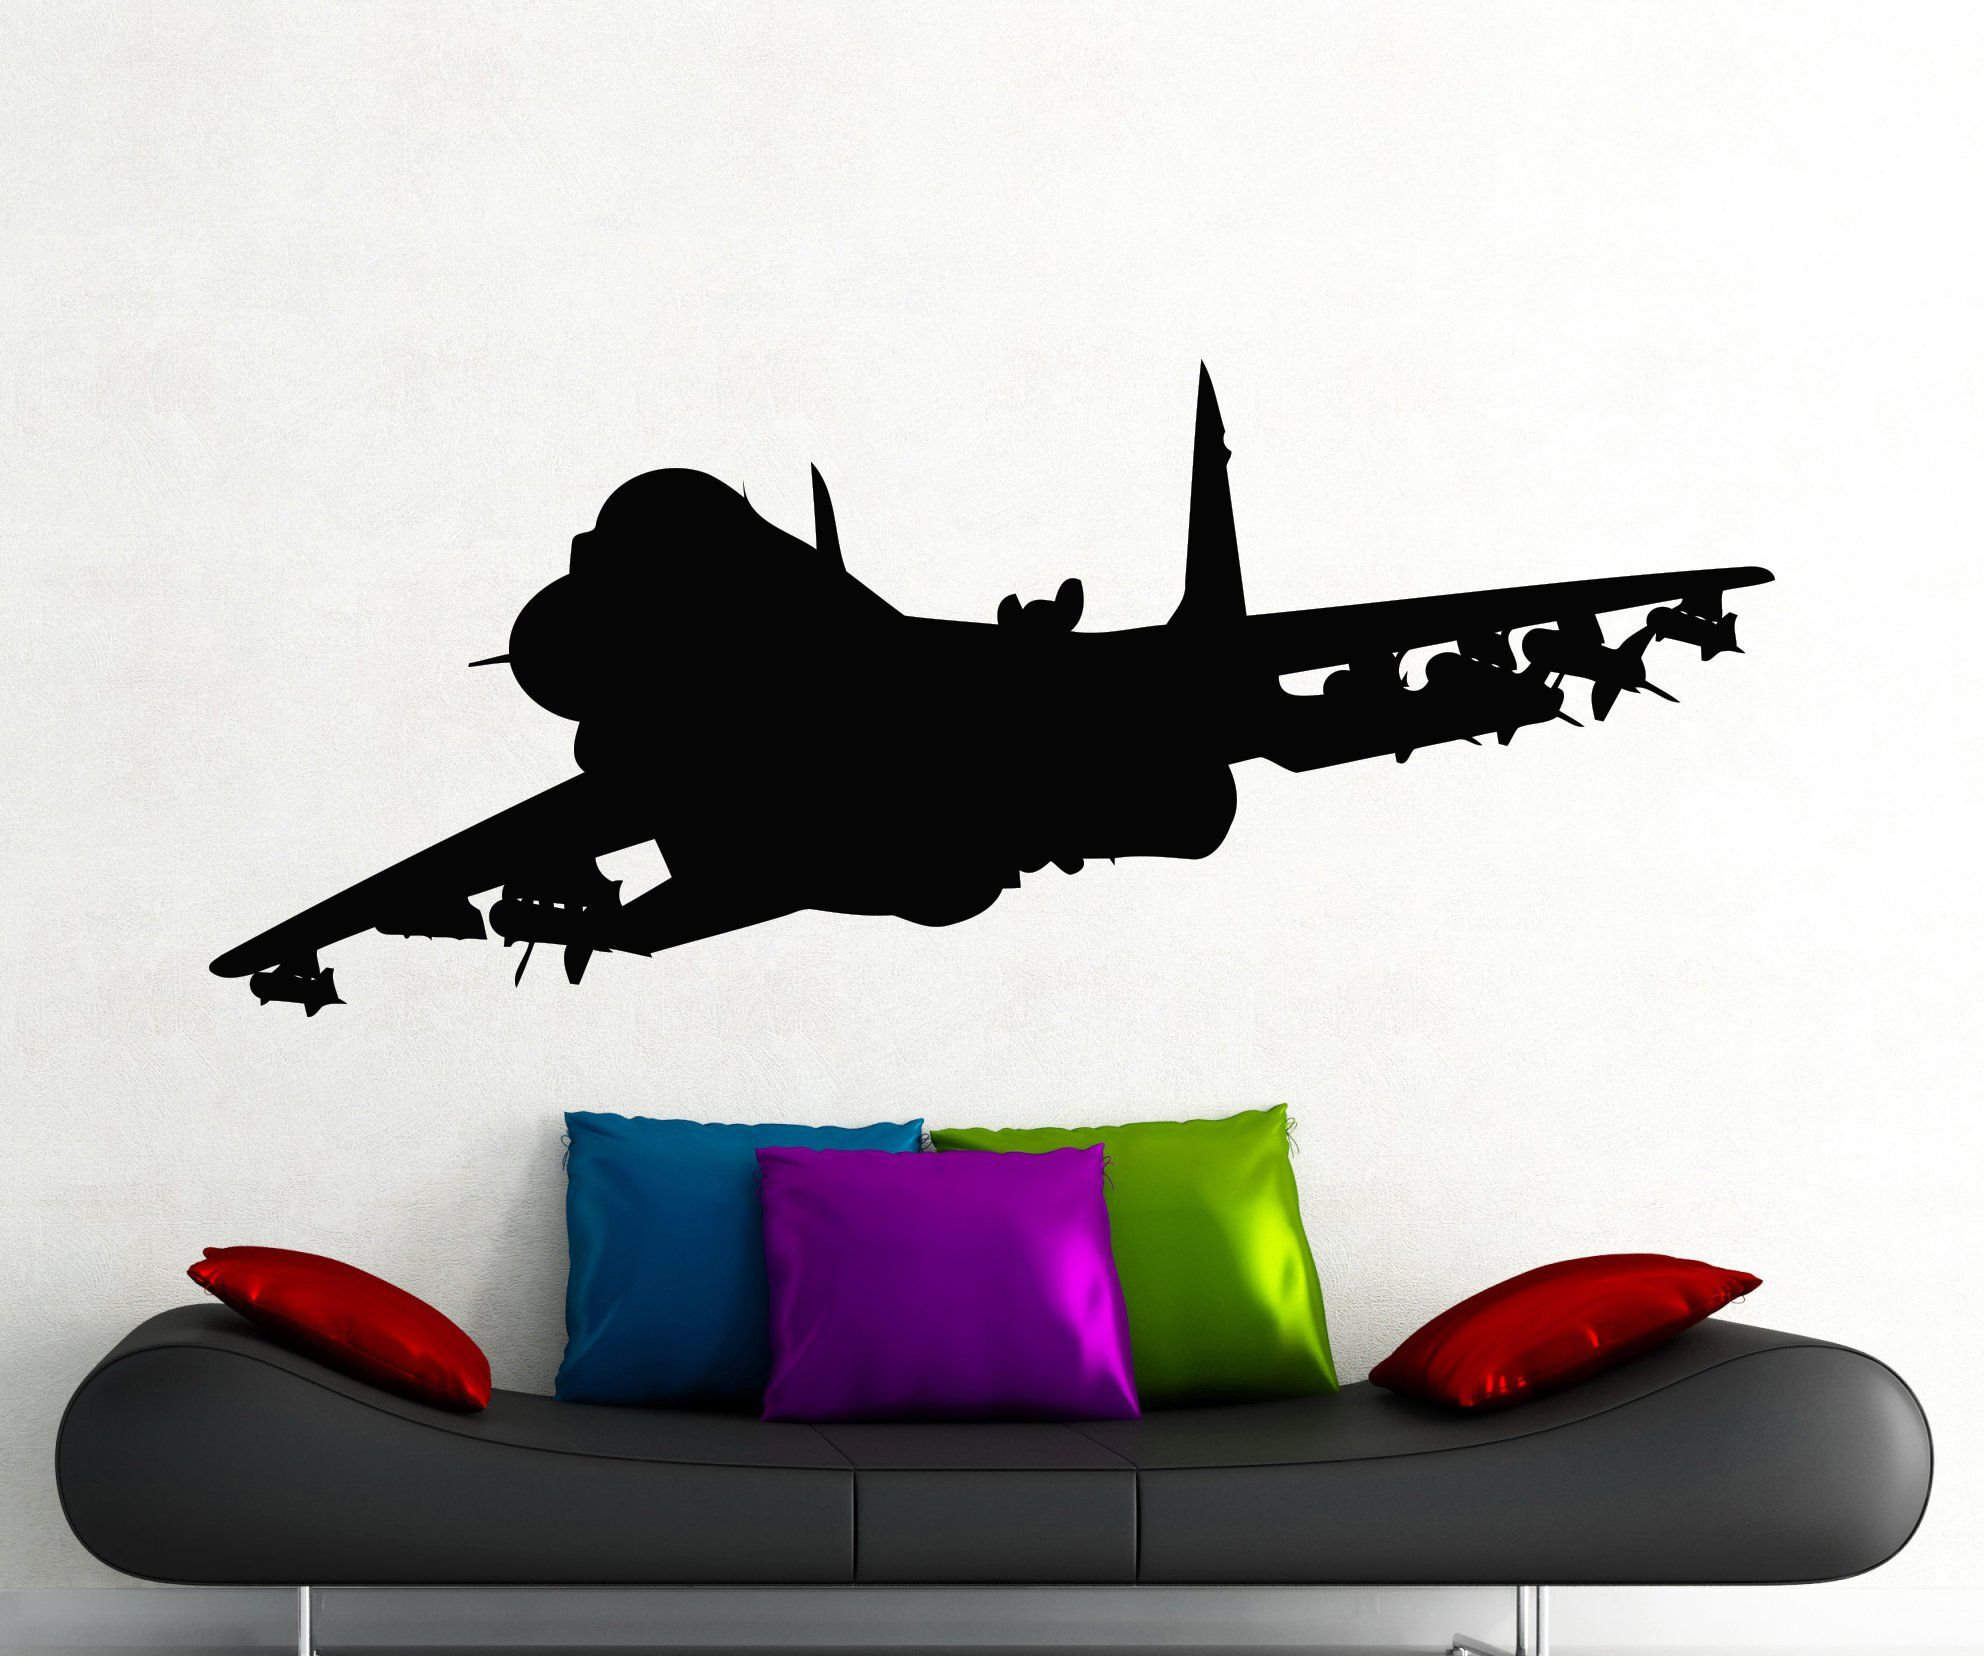 1984x1656 Jet Airplane Fighter Silhouette Wall Decal Aircraft Bomber